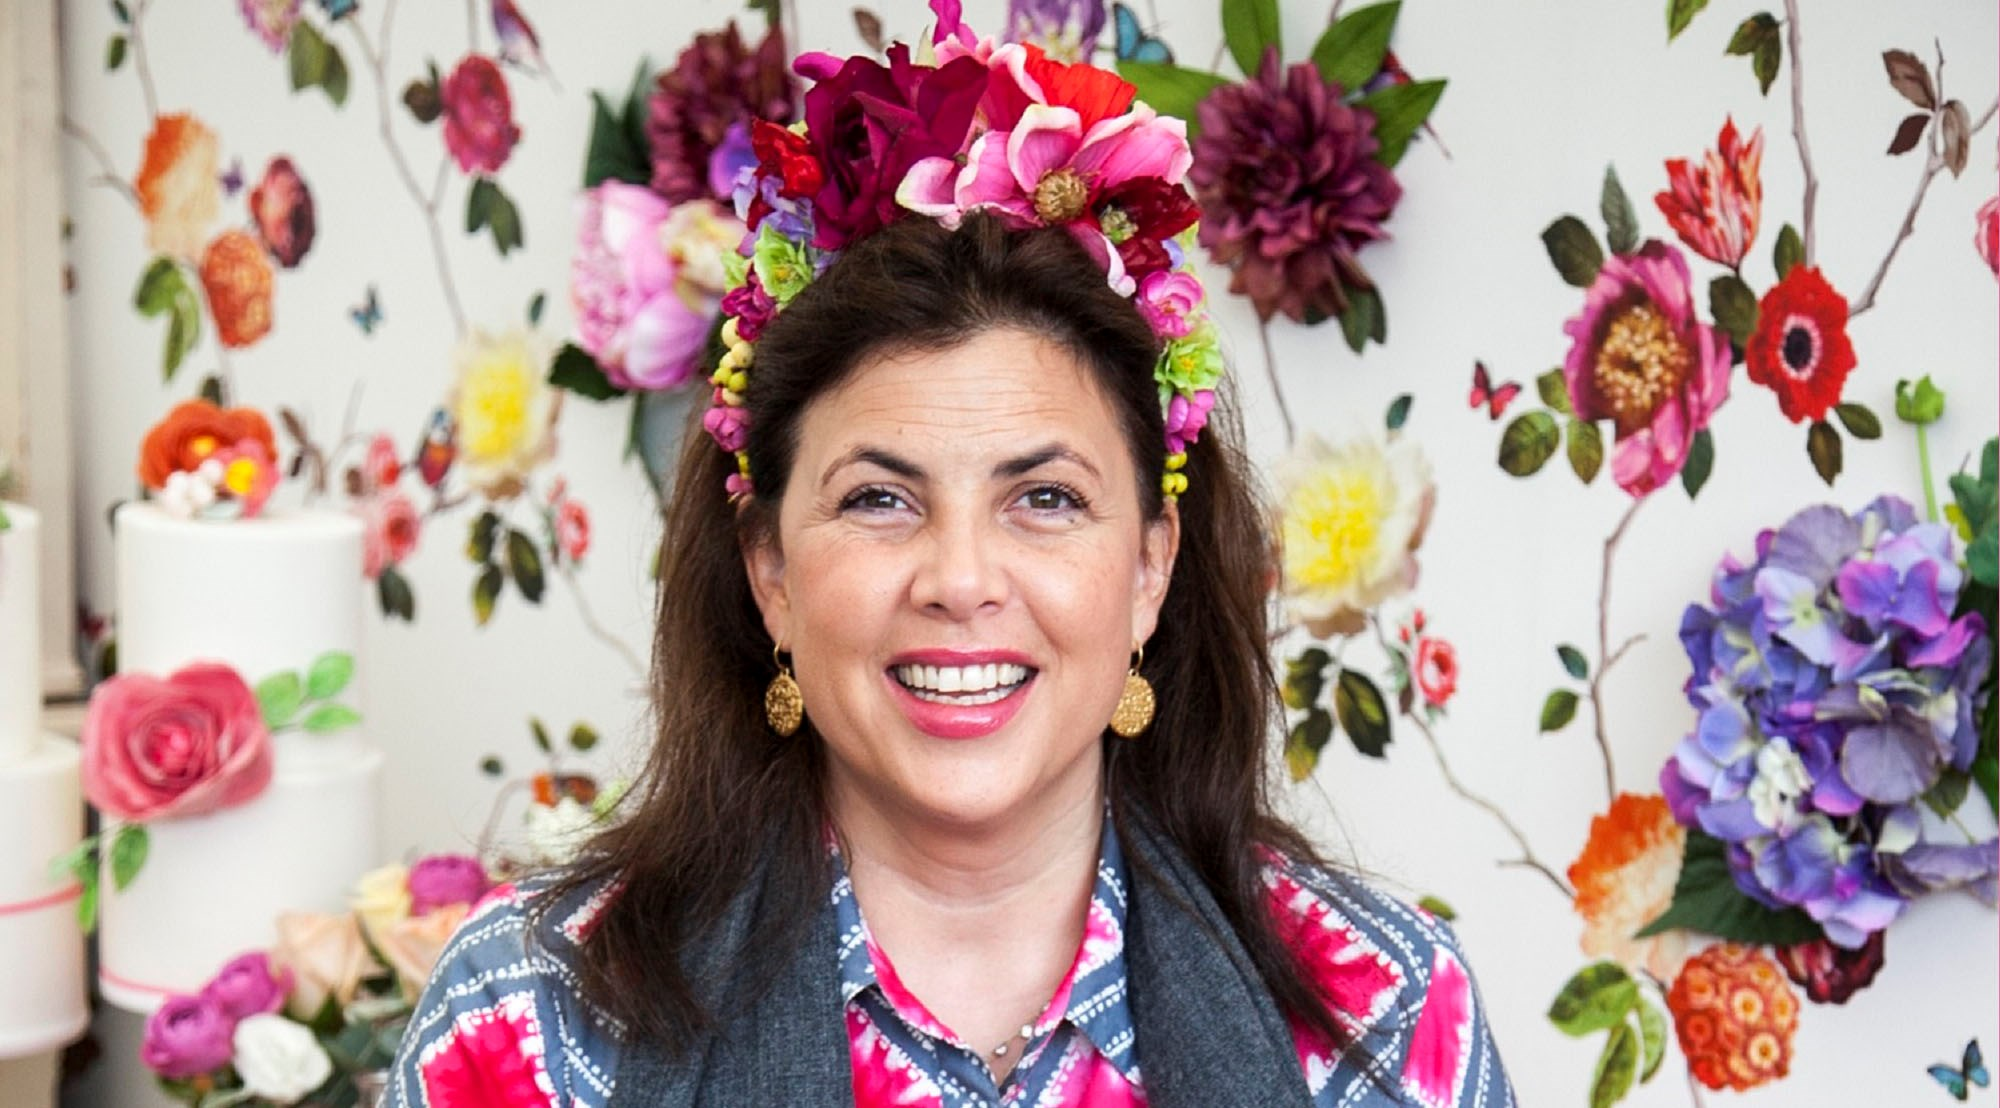 Tickets to Kirstie Allsopp's Handmade Fair